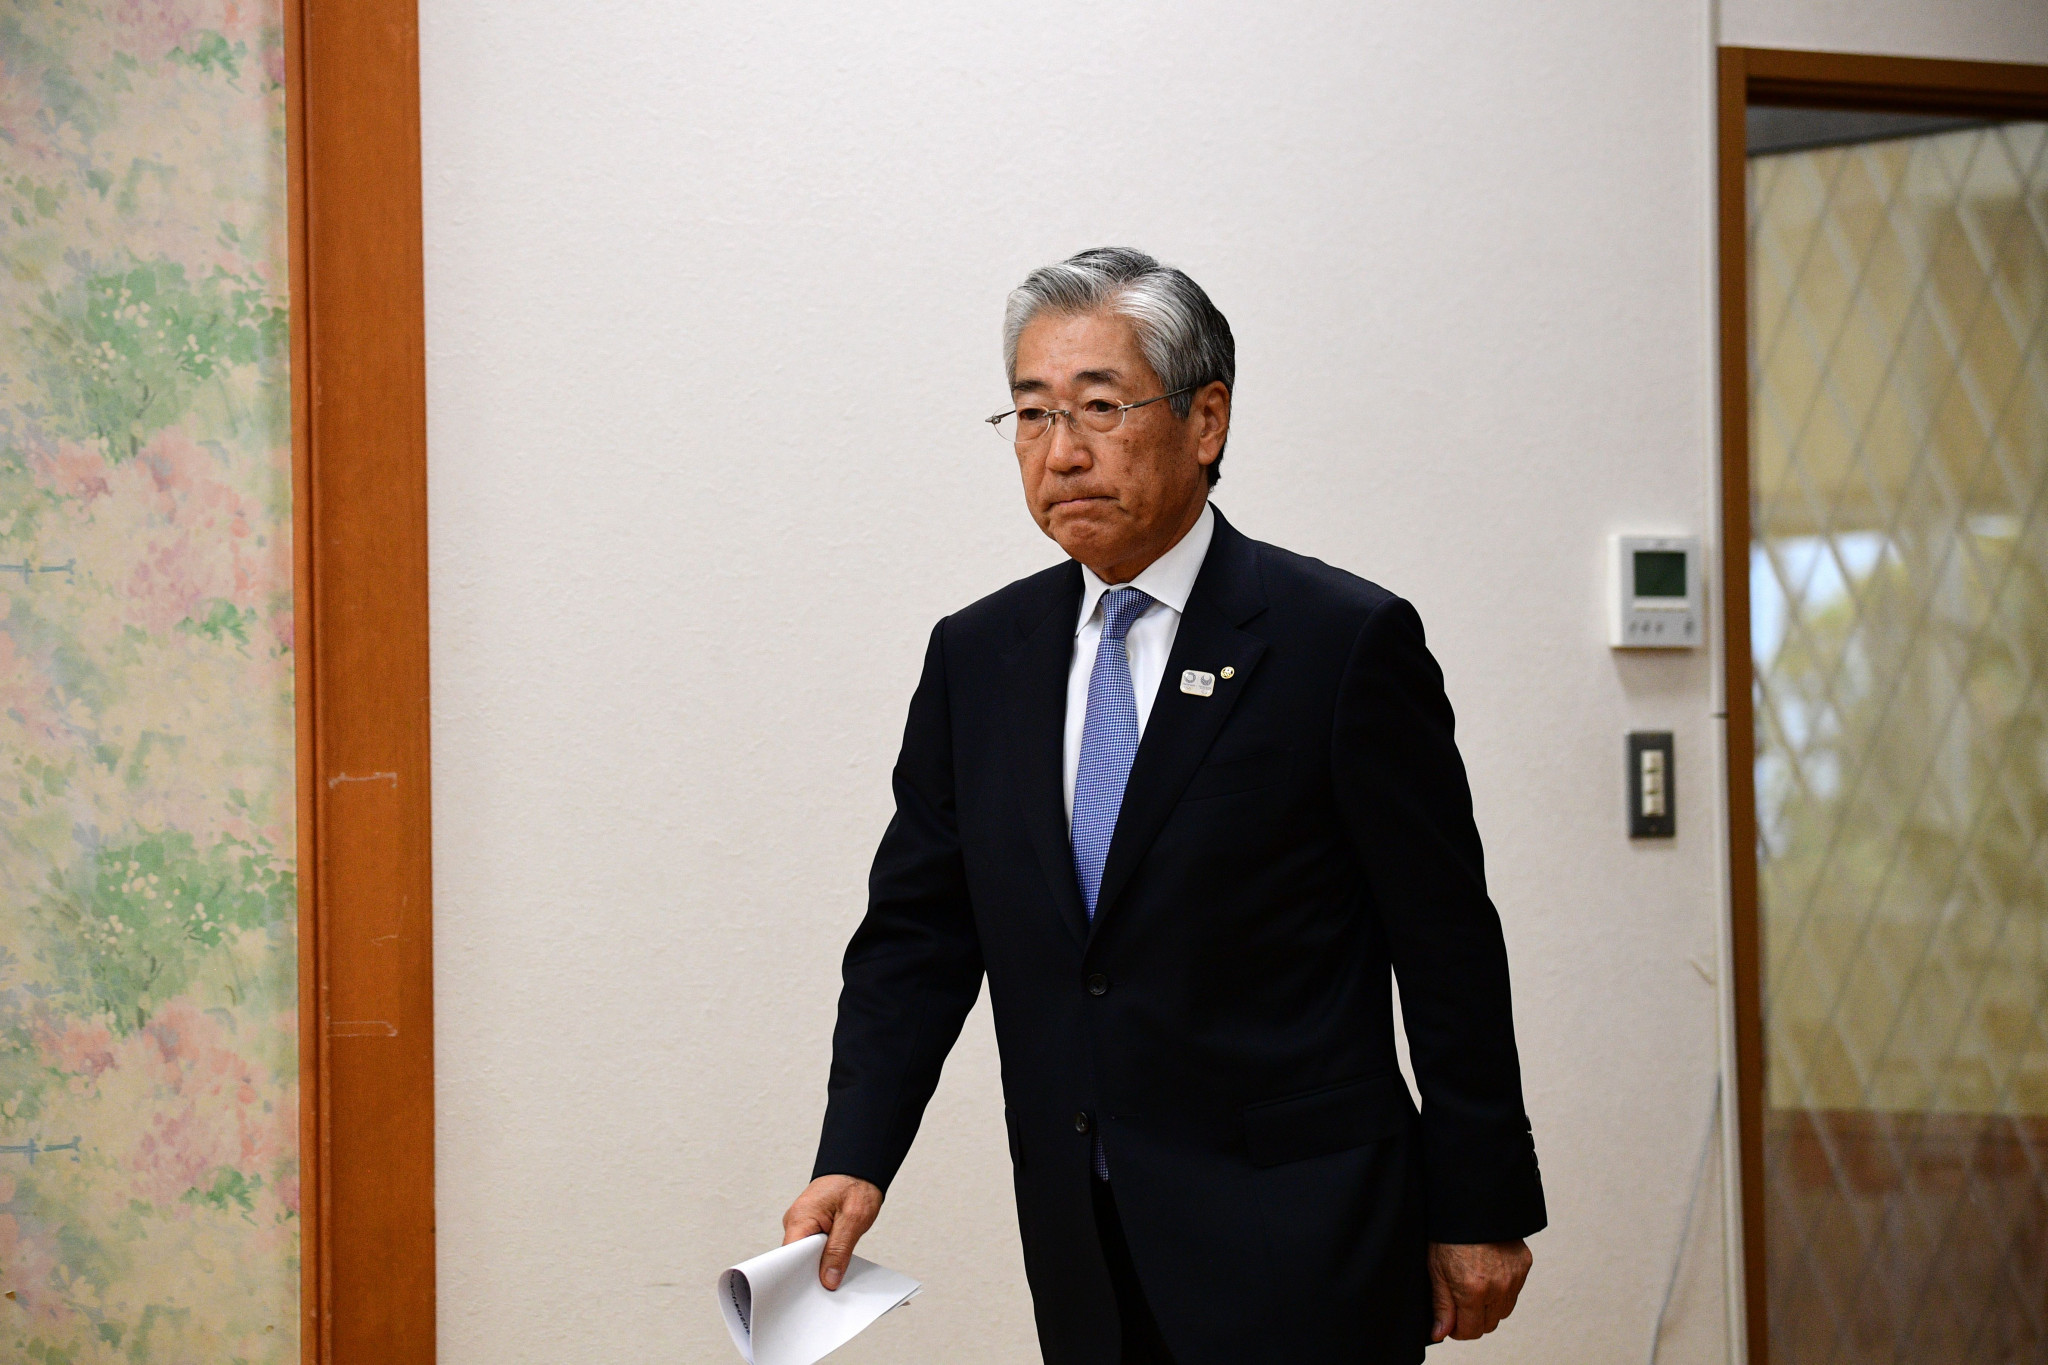 Takeda to miss IOC Marketing Commission meeting following corruption charge